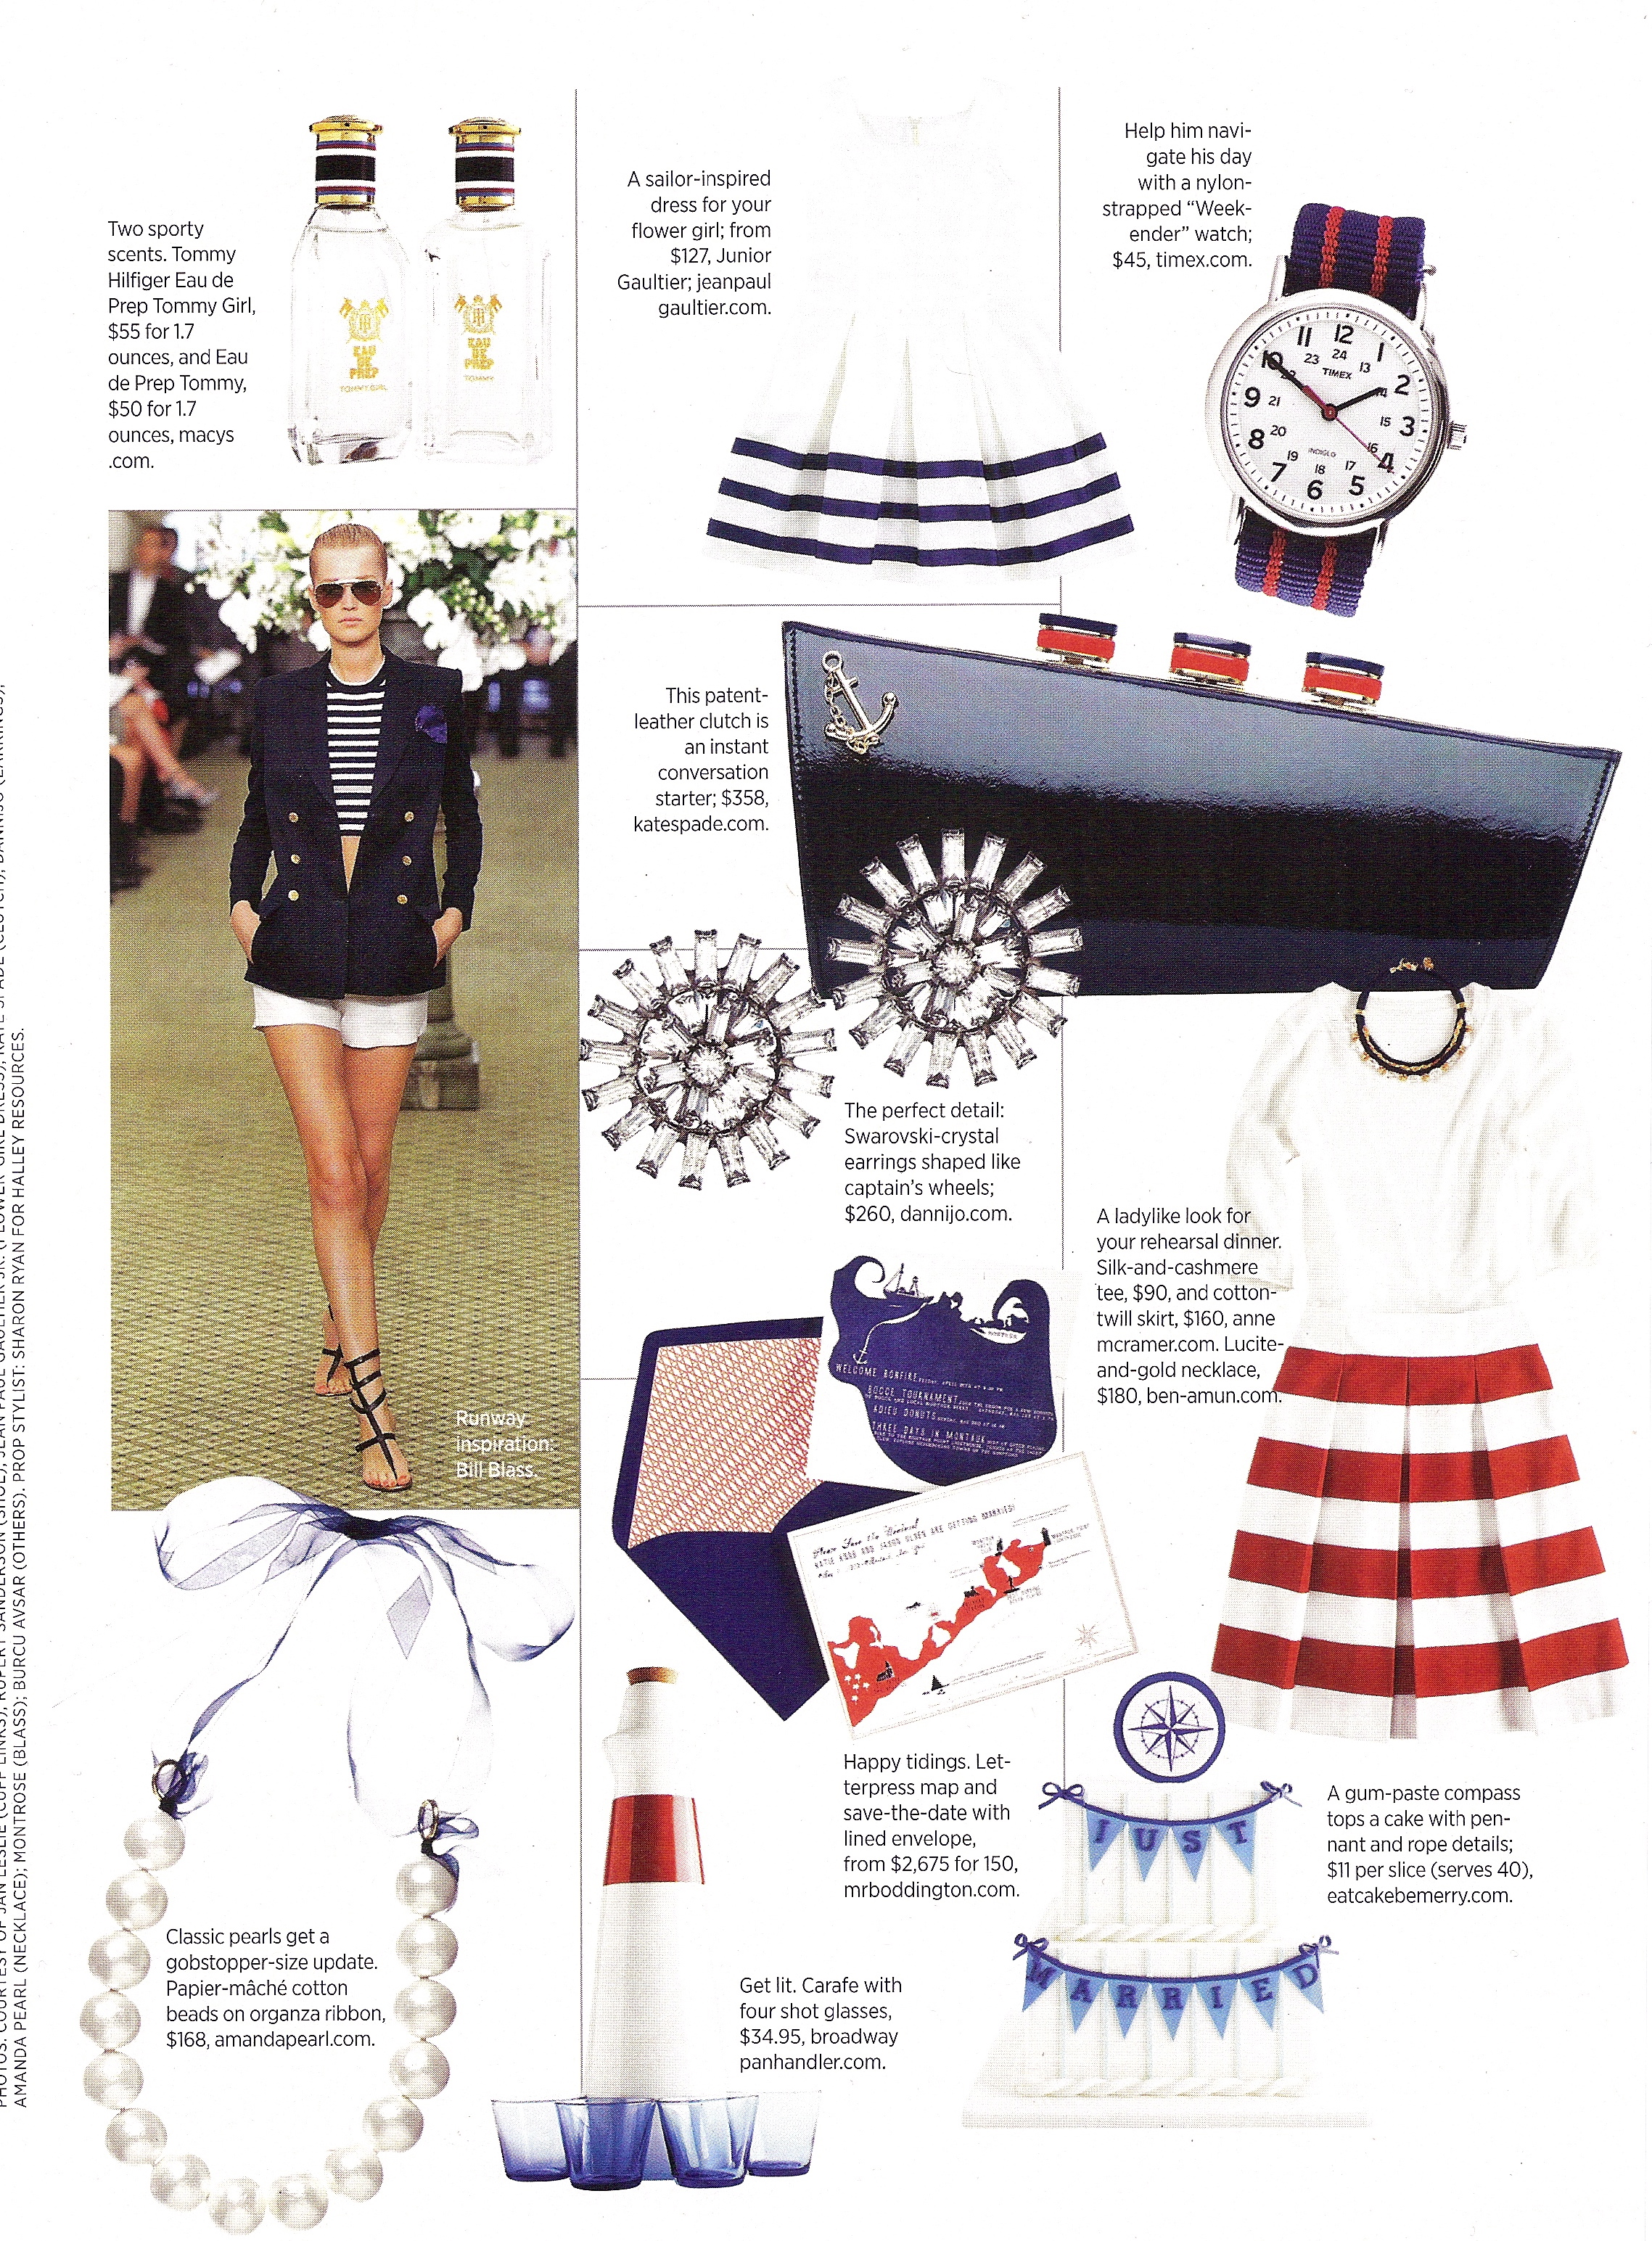 Brides April 2012 Nautical Feature.jpg